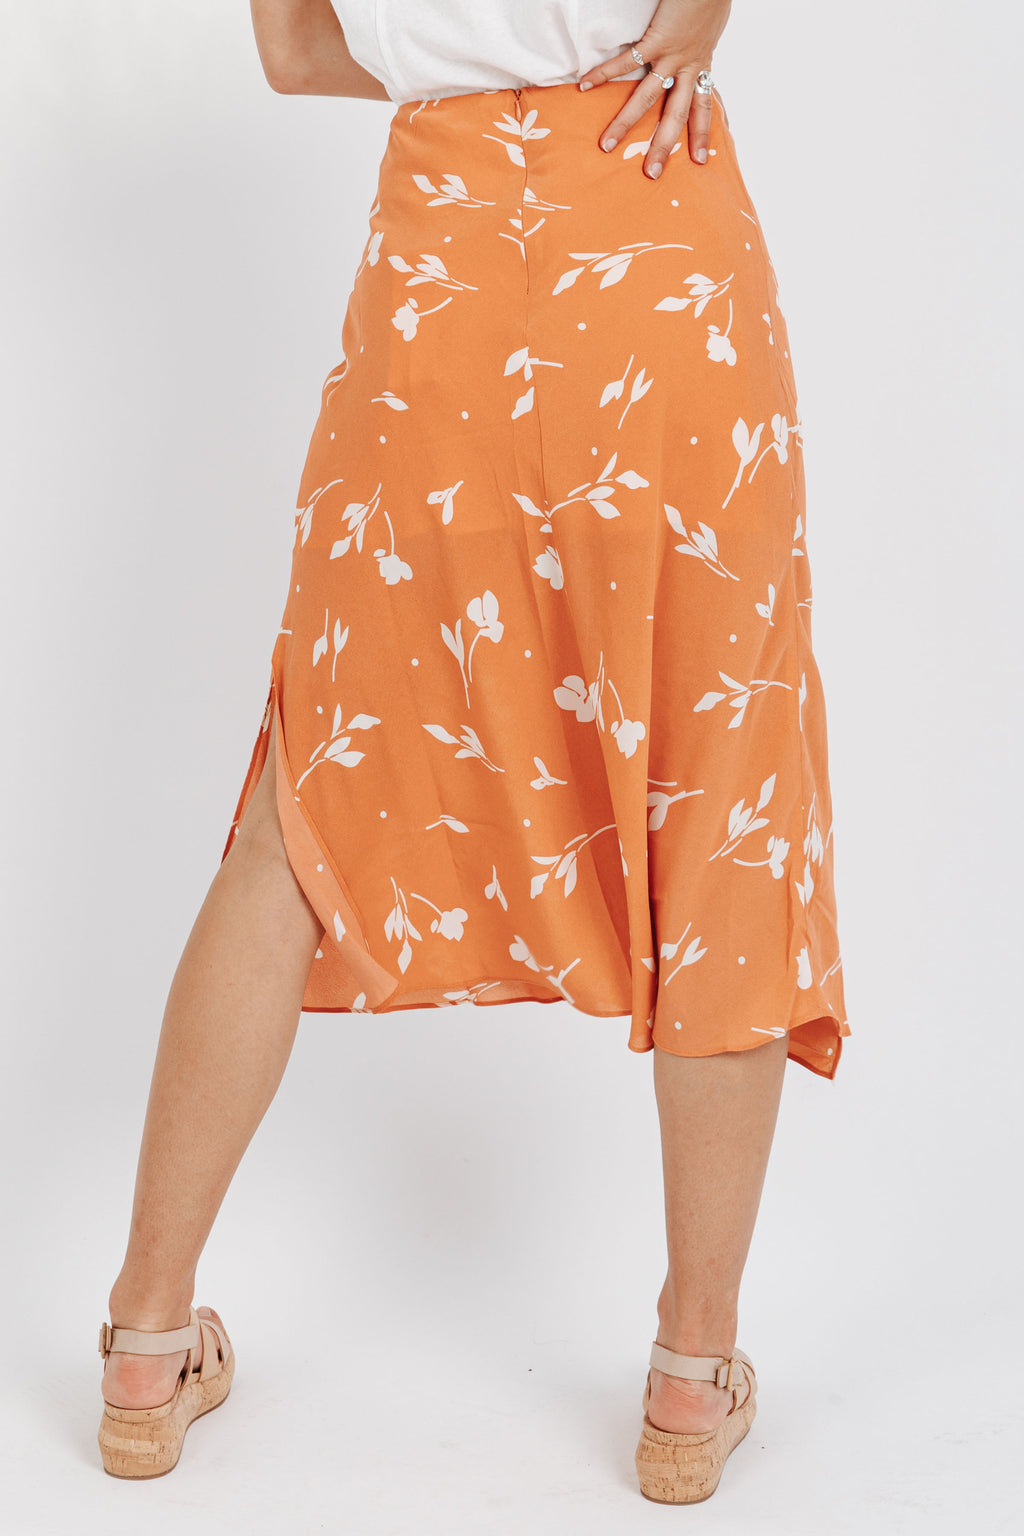 The Iggy Patterned Skirt in Salmon